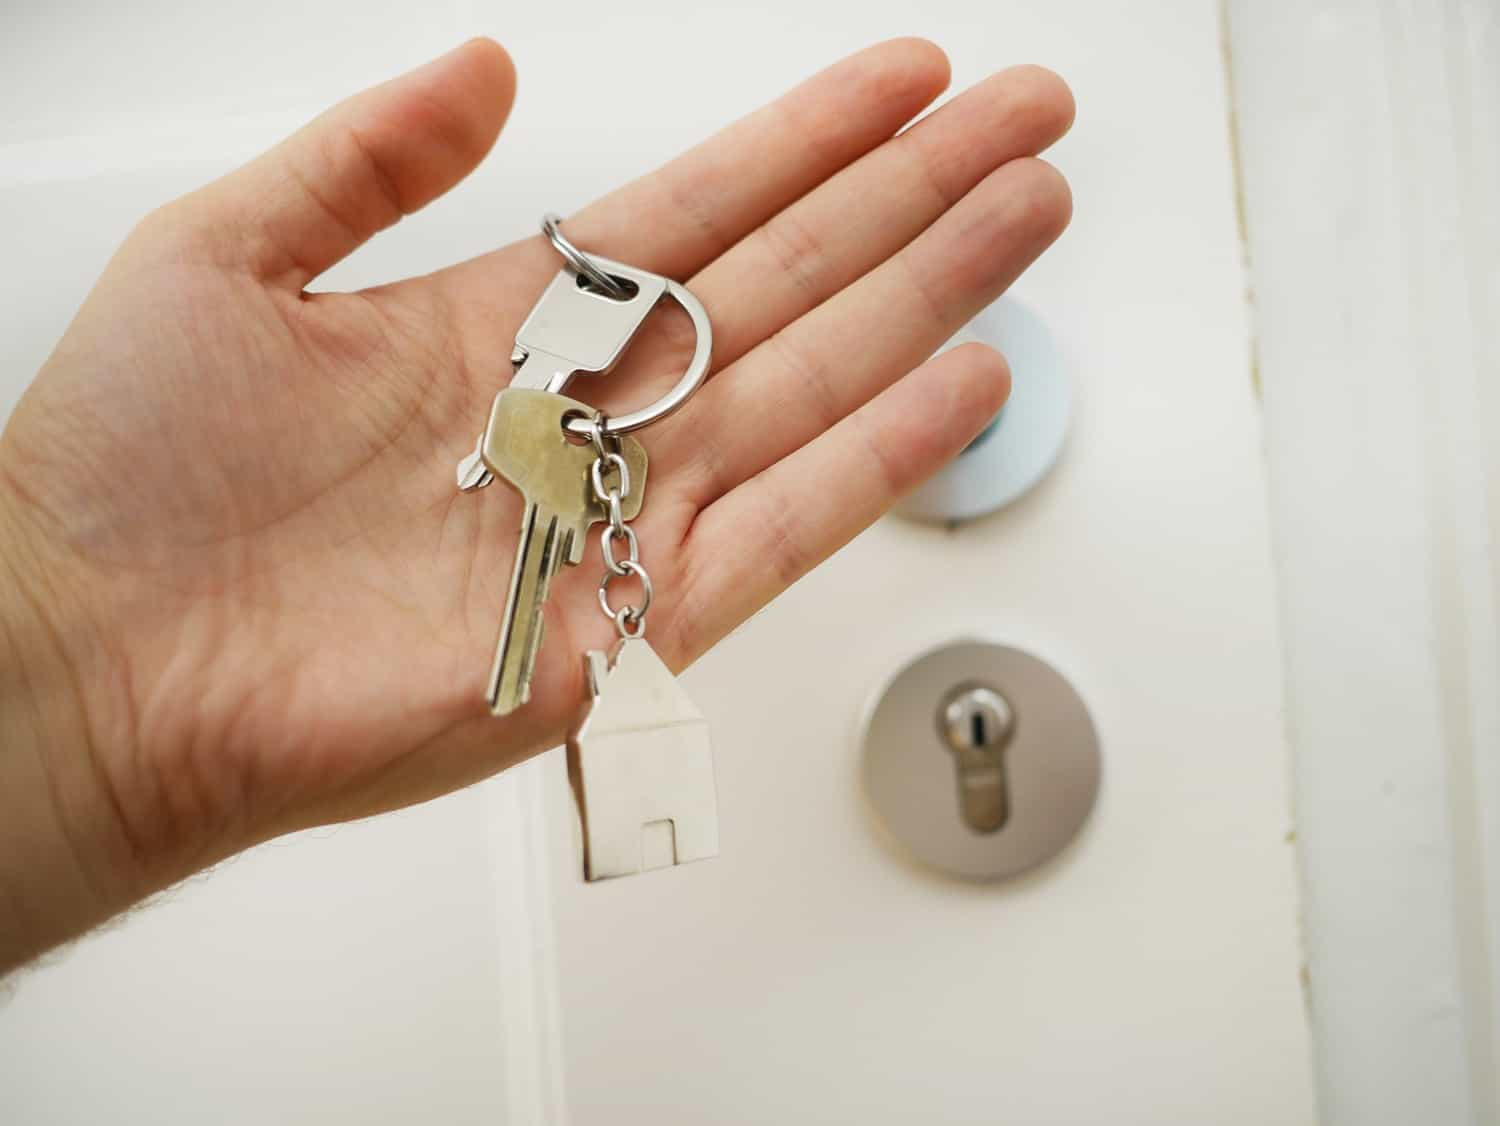 10 Cheap Housing Alternatives to Live Alone or With Family